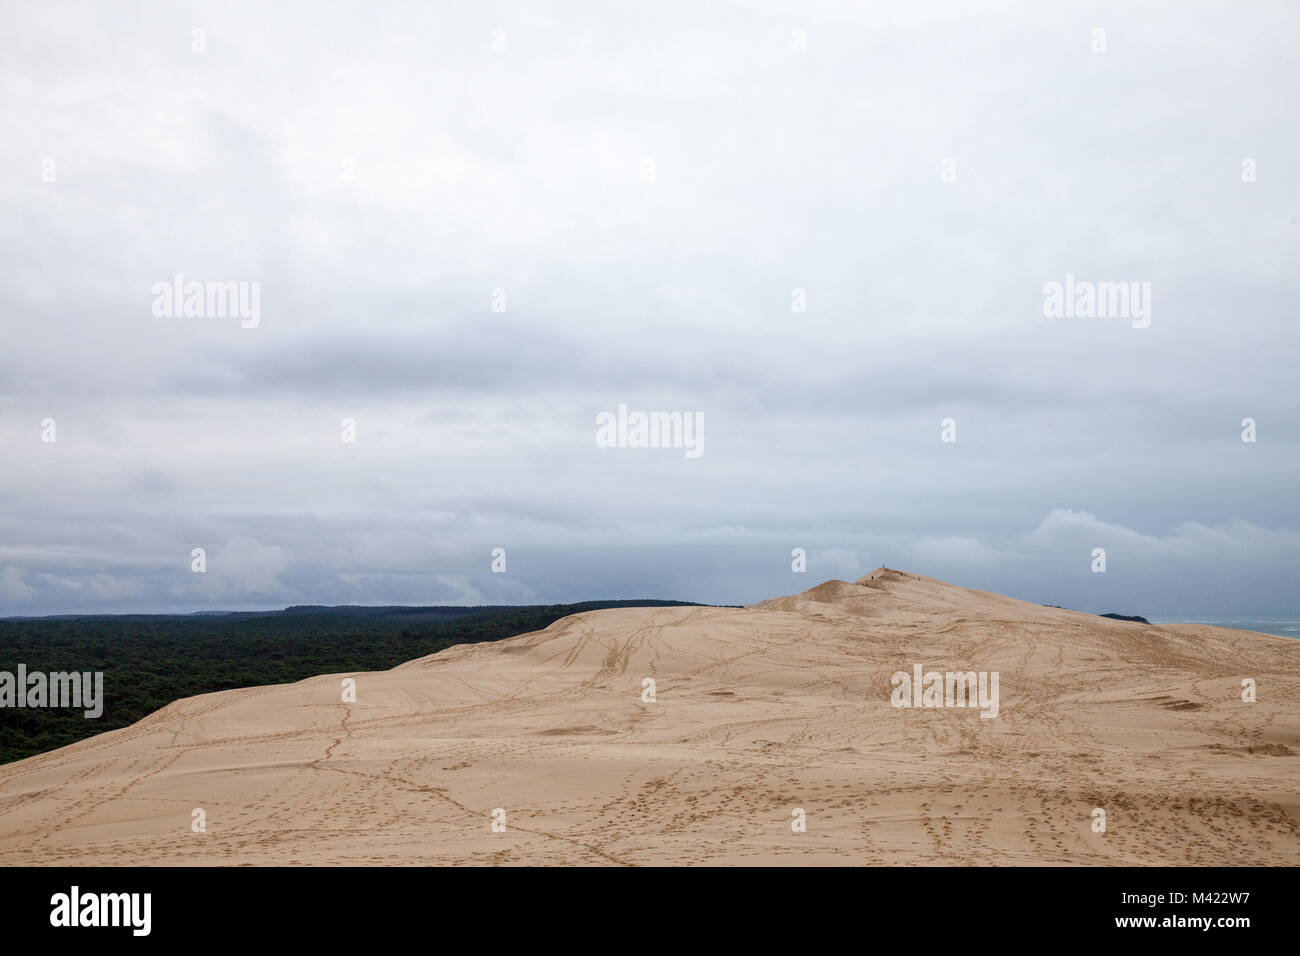 Panorama of the Pilat Dune (Dune du Pilat) during a cloudy afternoon with a pine forest in background. Pilat, or - Stock Image